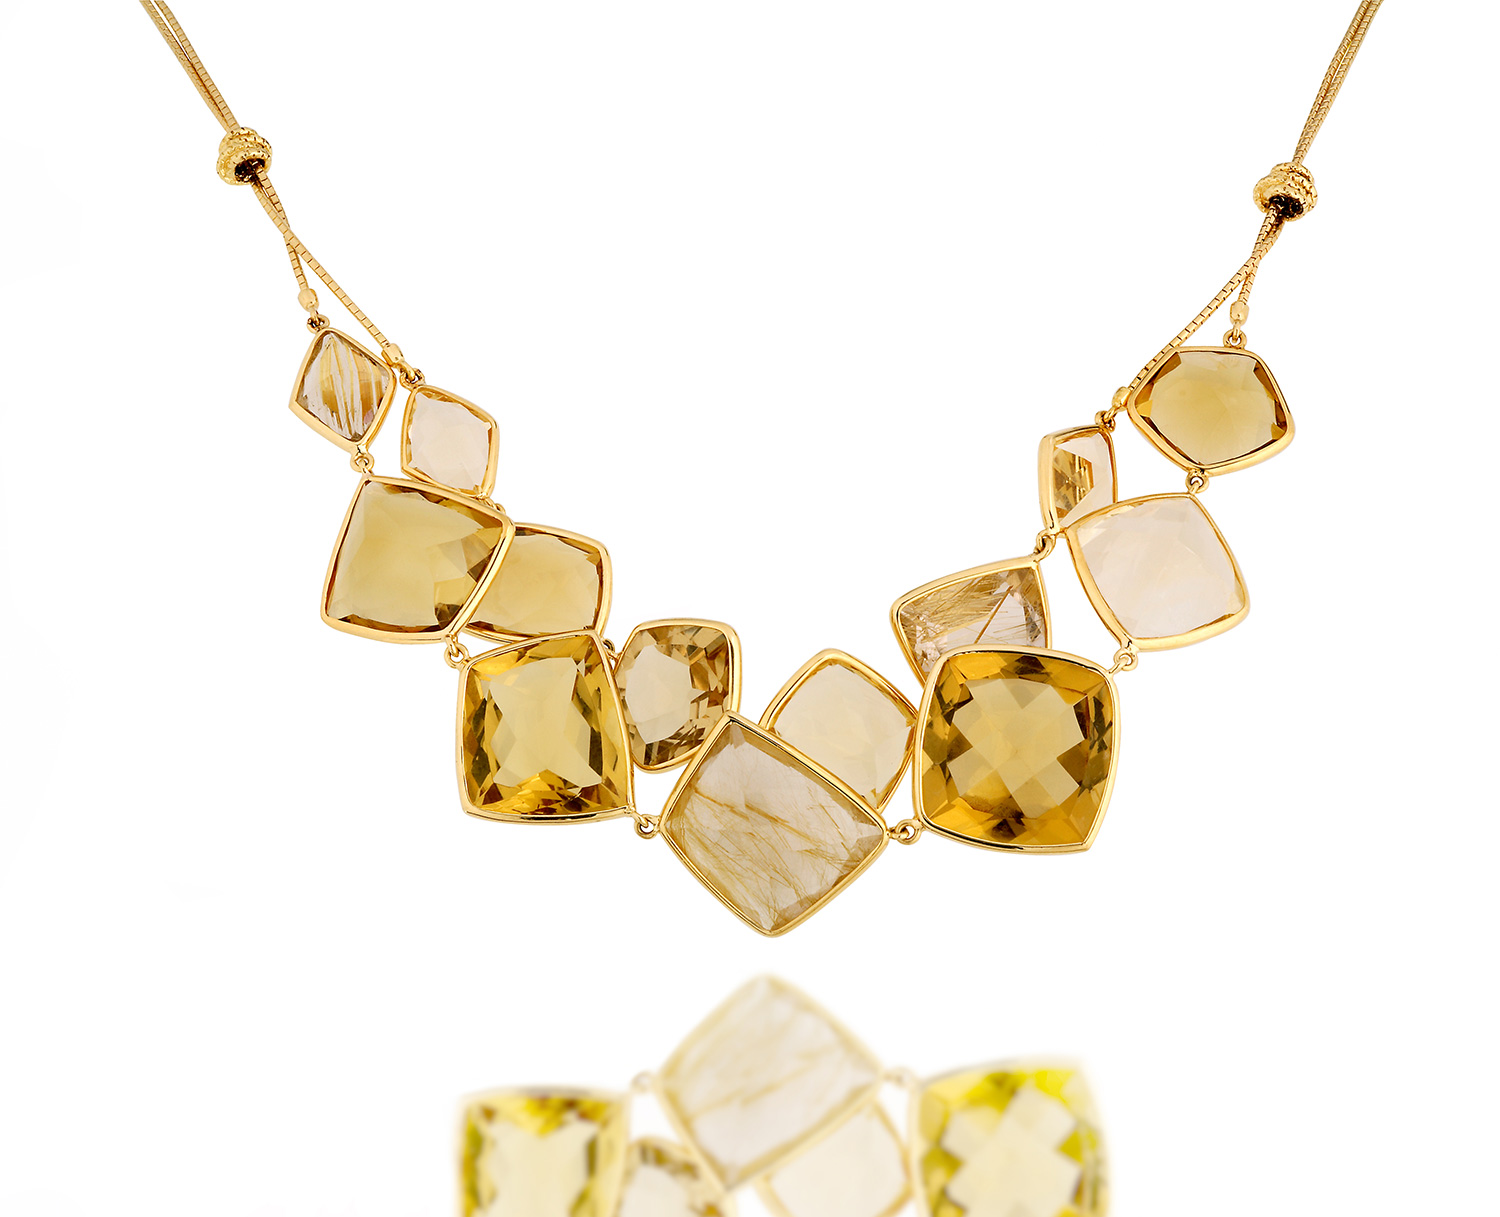 yellow gold necklace with natural quartz